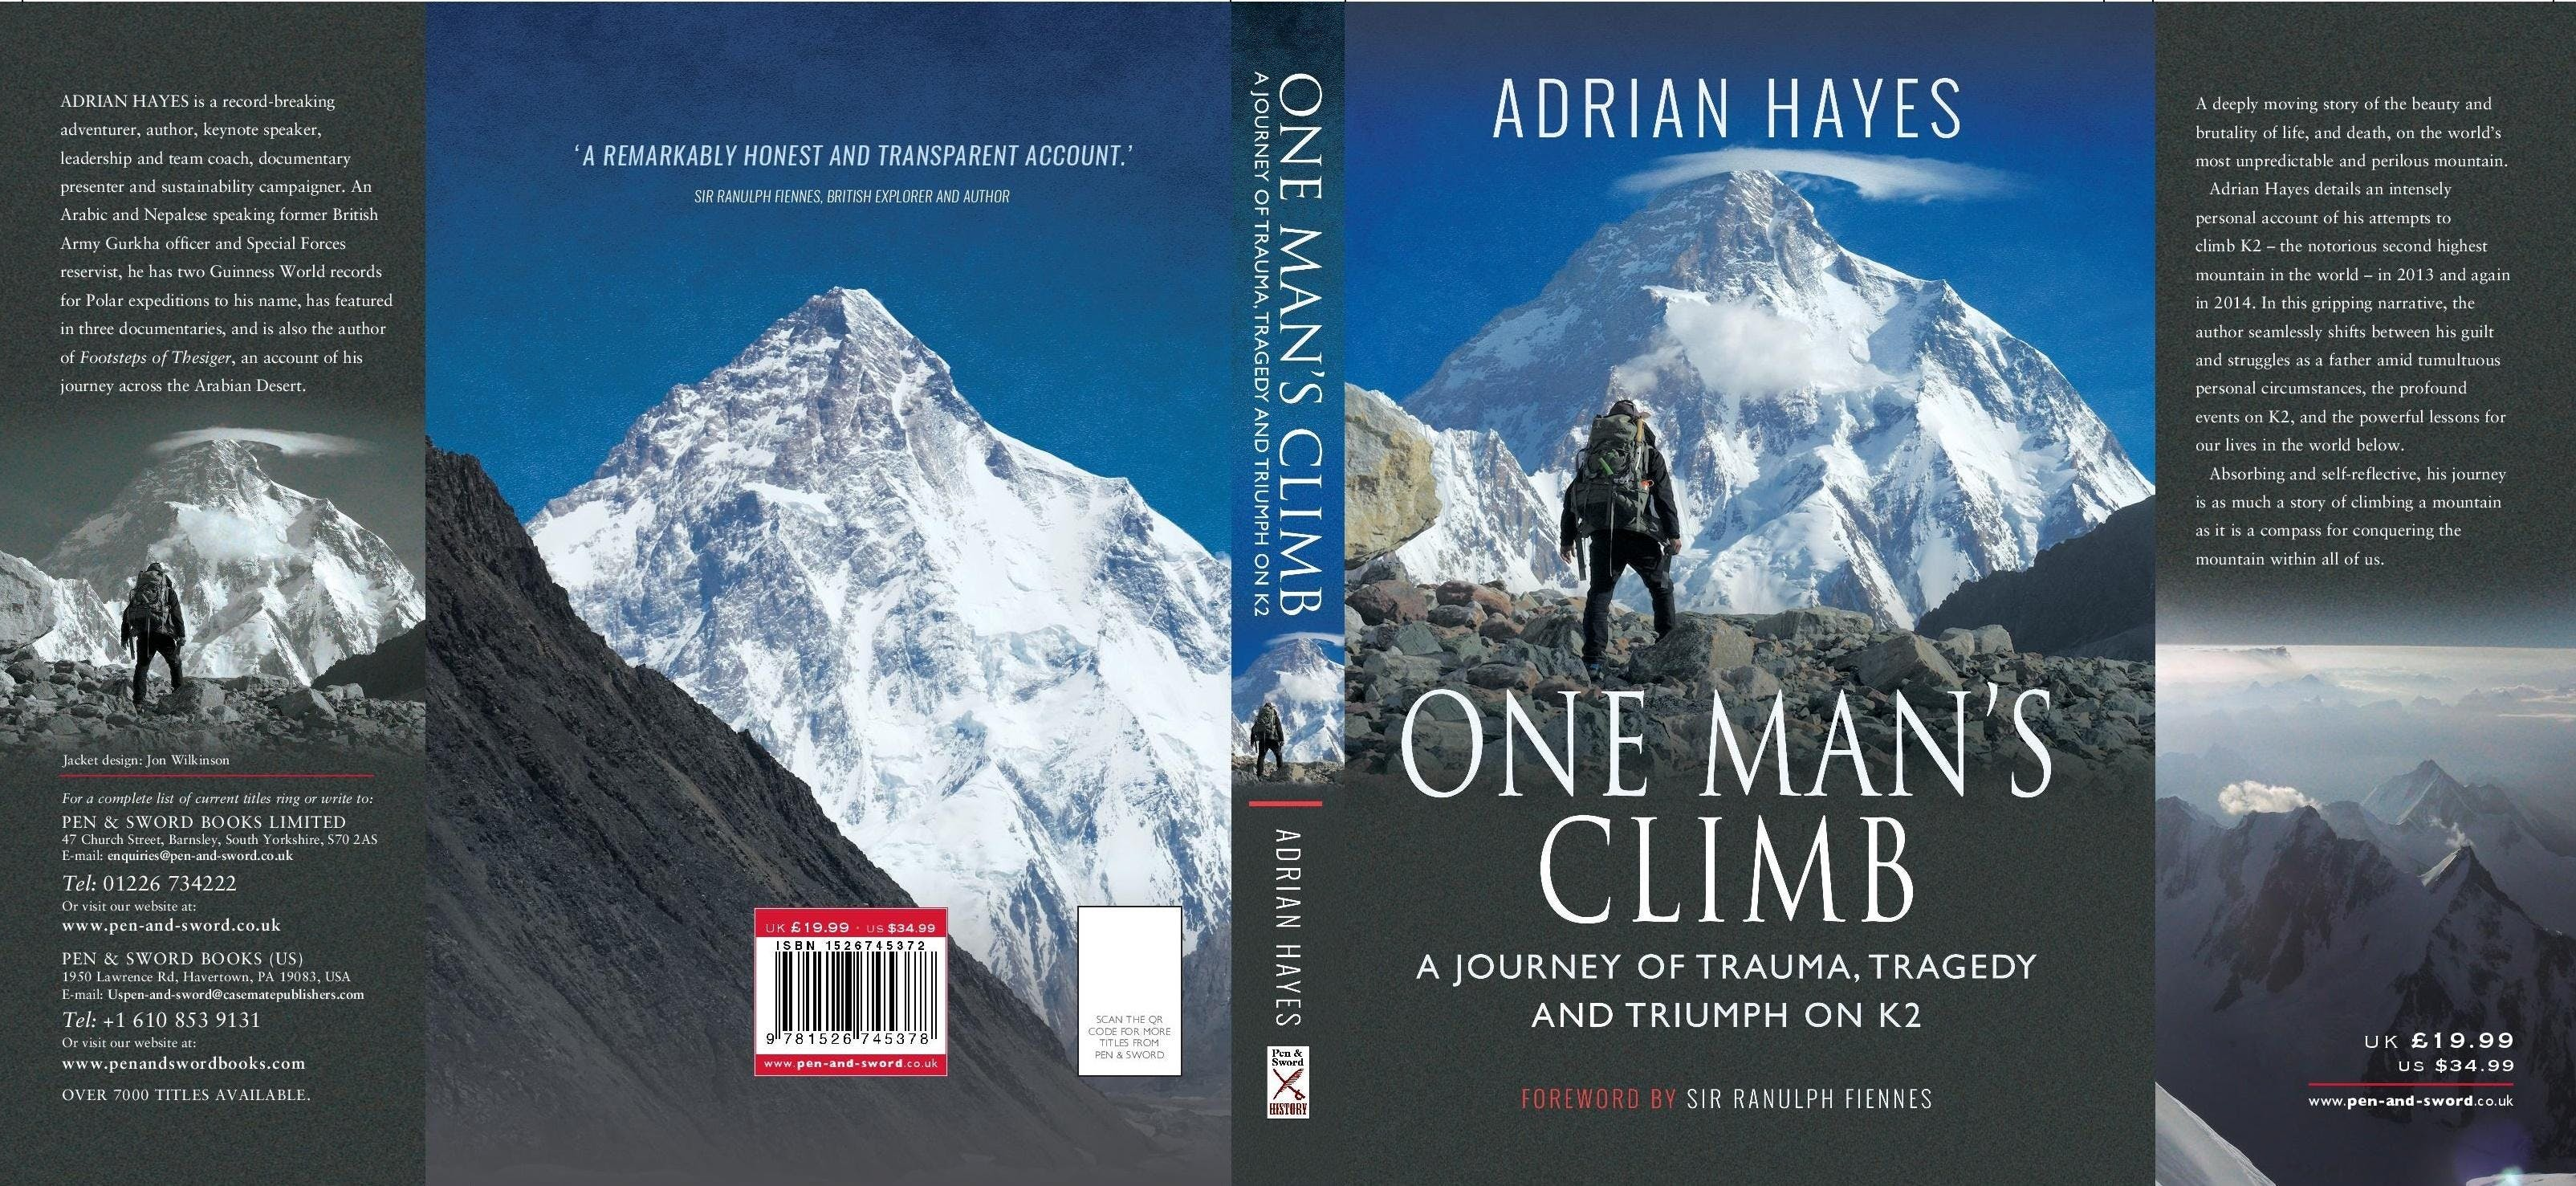 'One Man's Climb' Book Launch and Presentatio